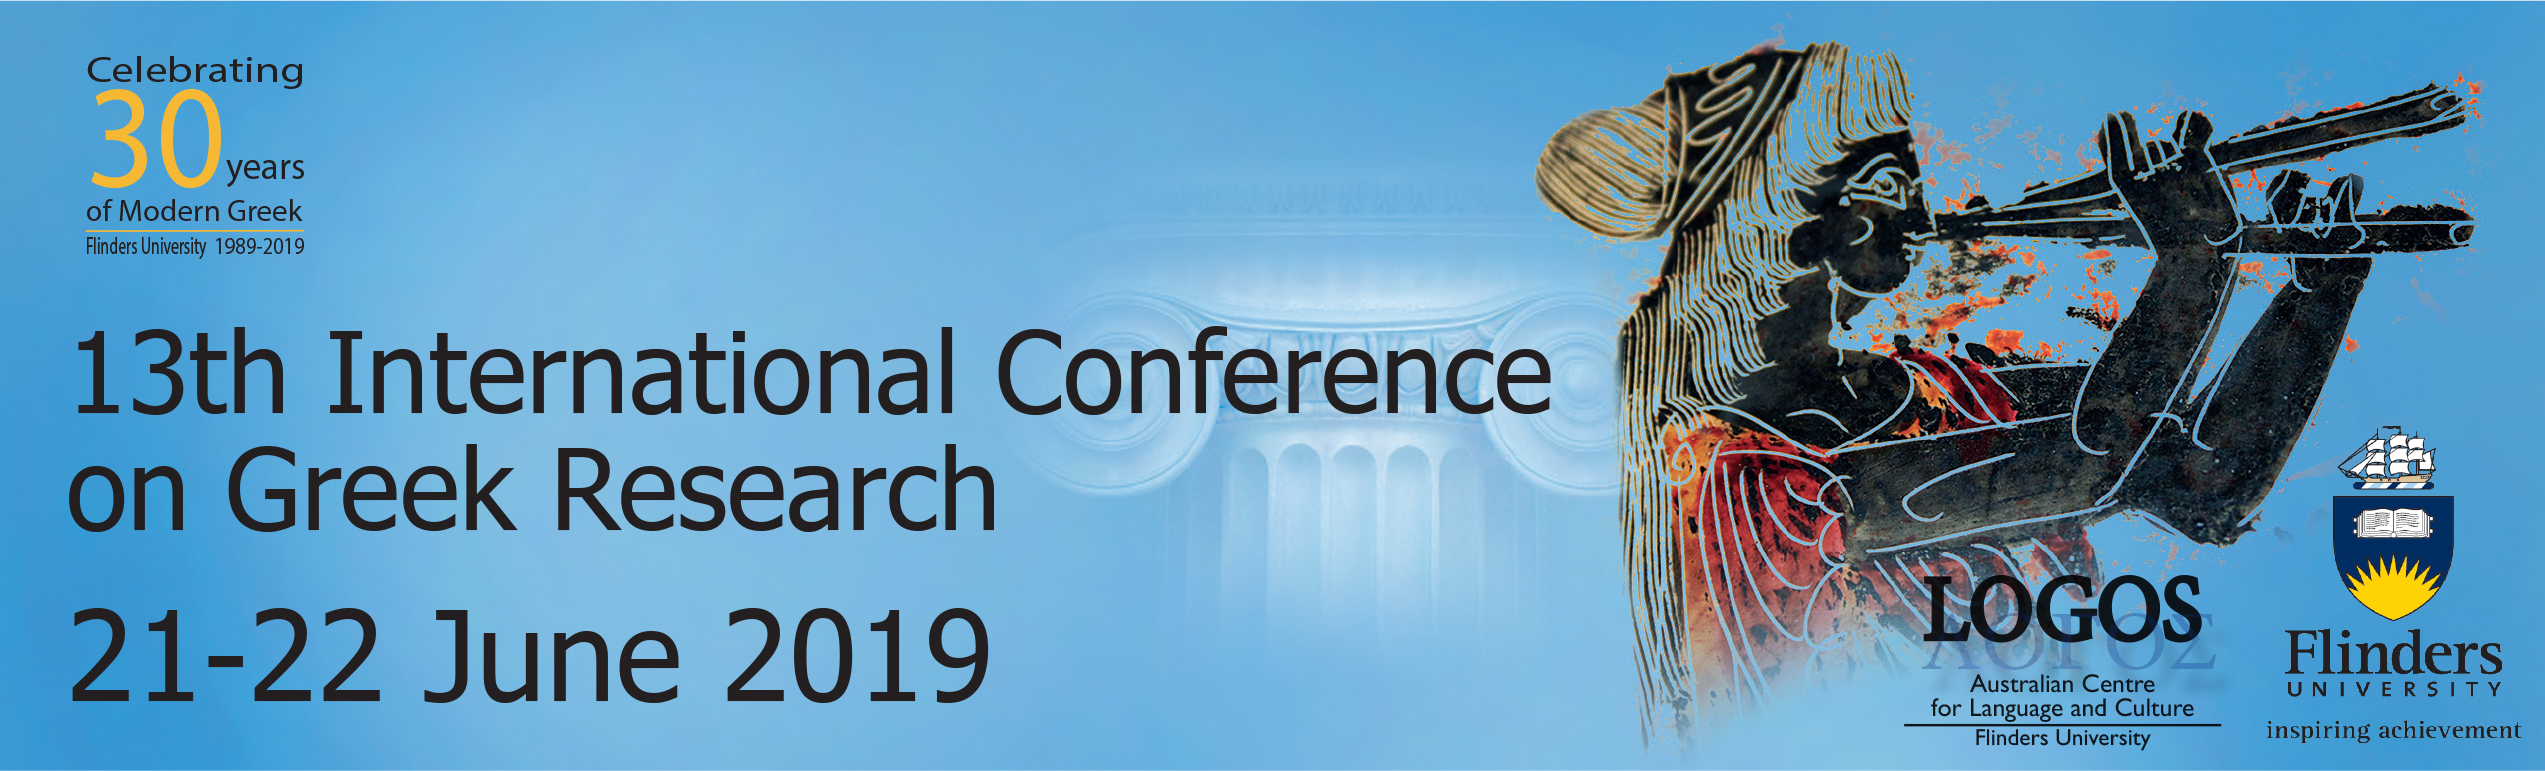 13th International Conference on Greek Research